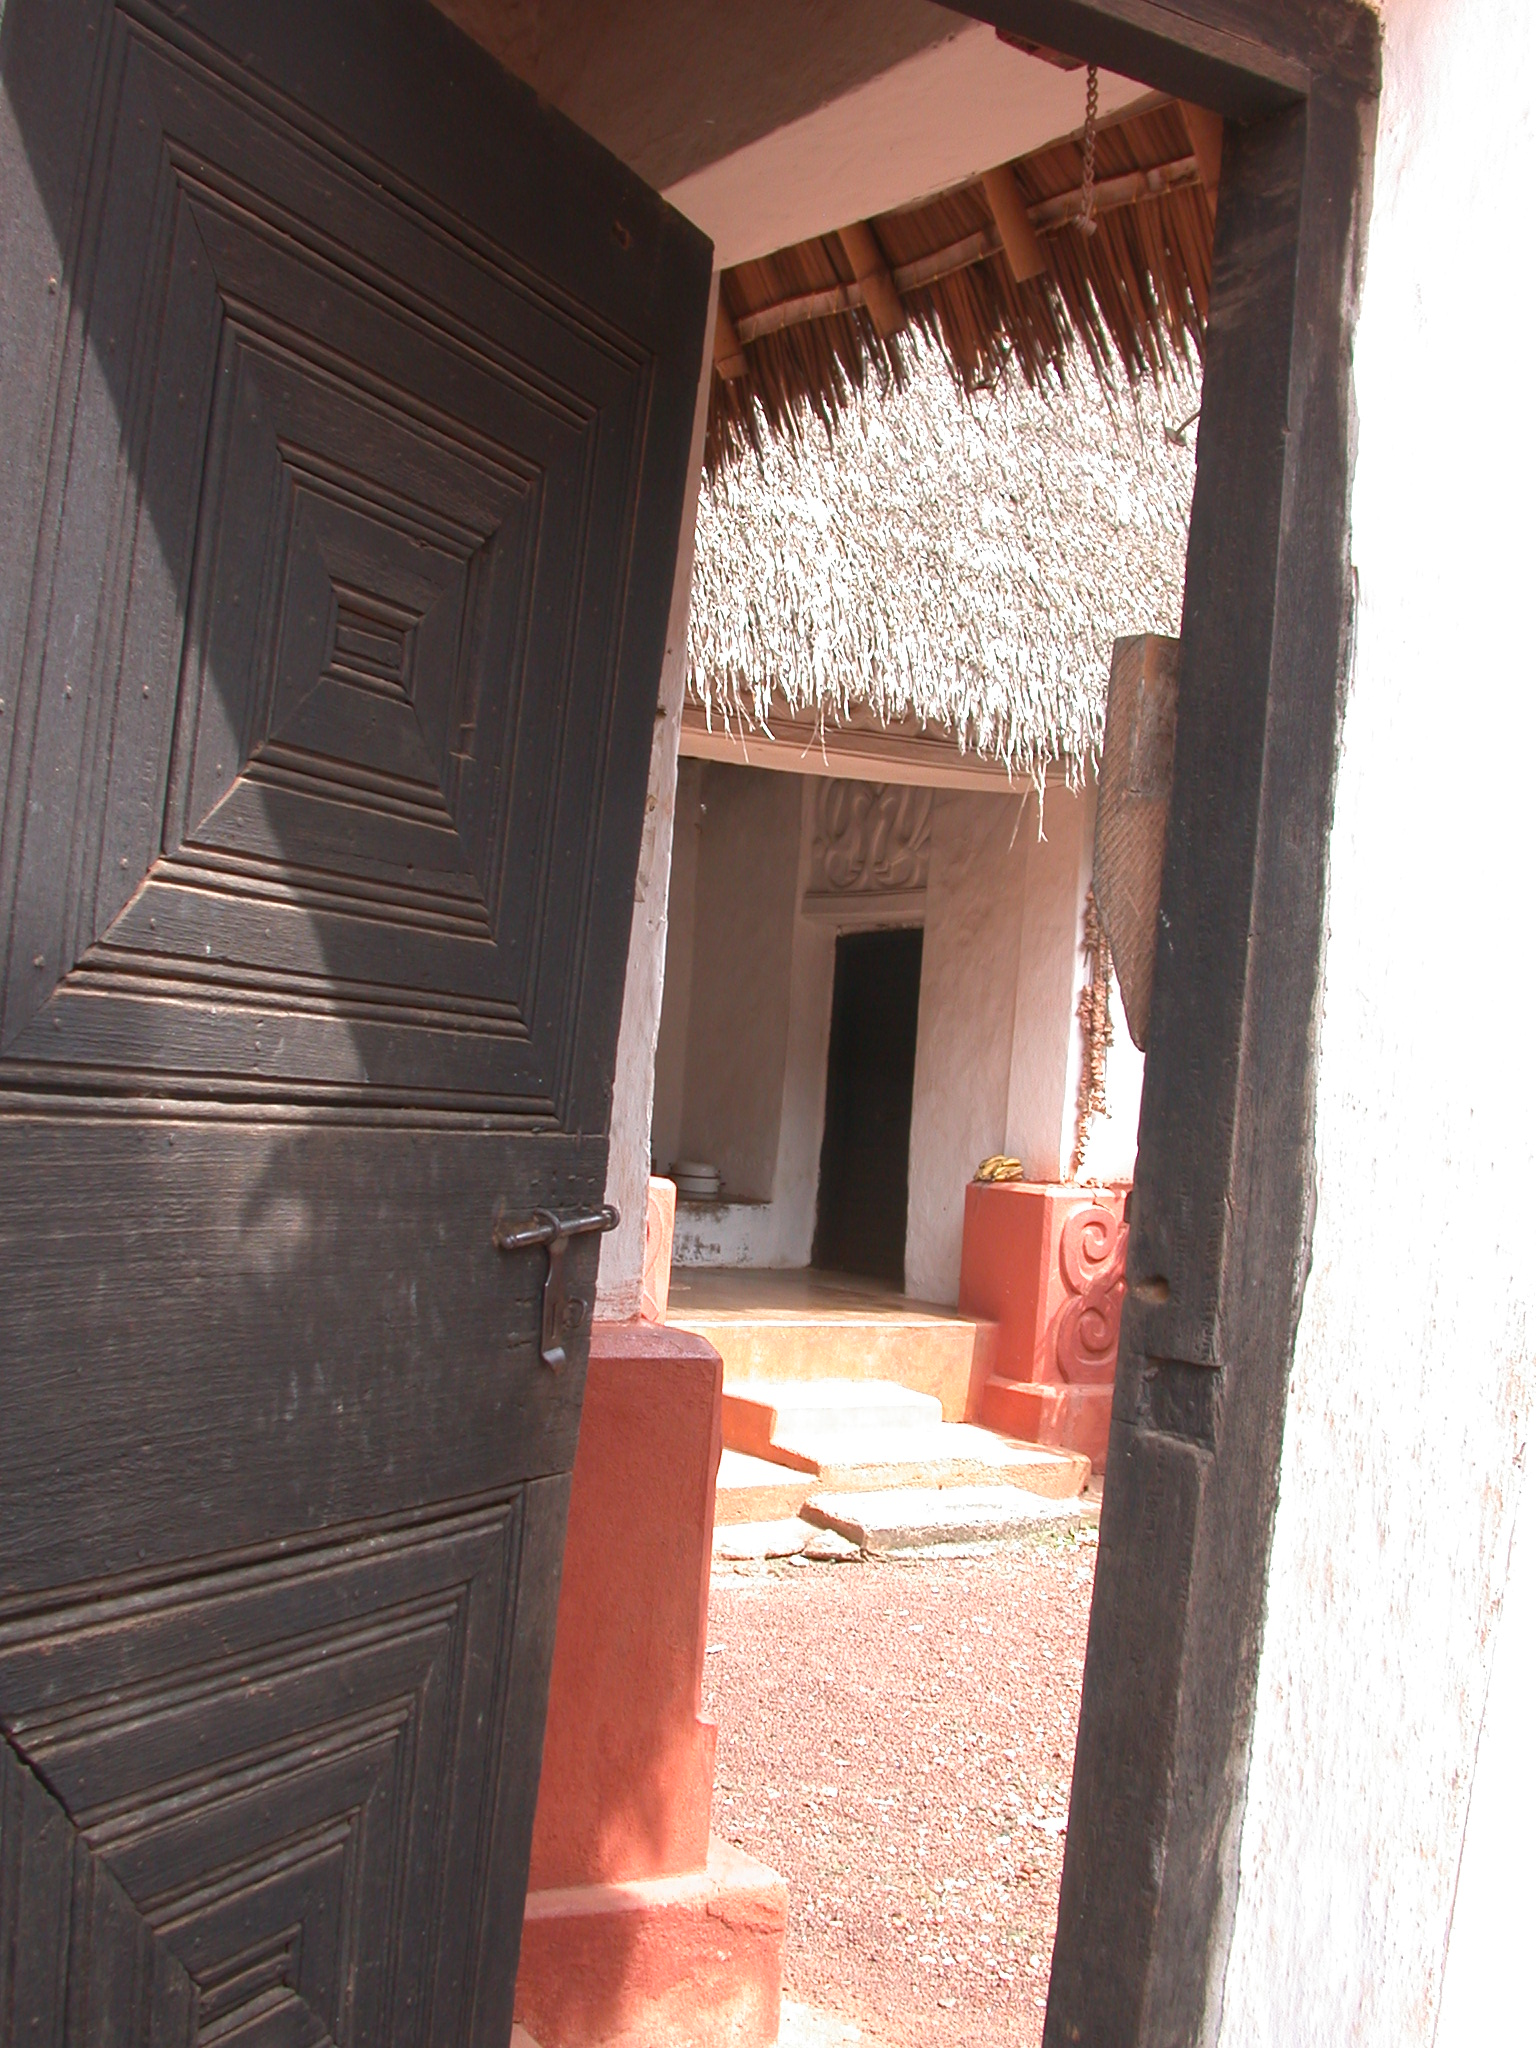 Entrance to Asante Traditional Shrine at Ejisu-Besease, Ghana